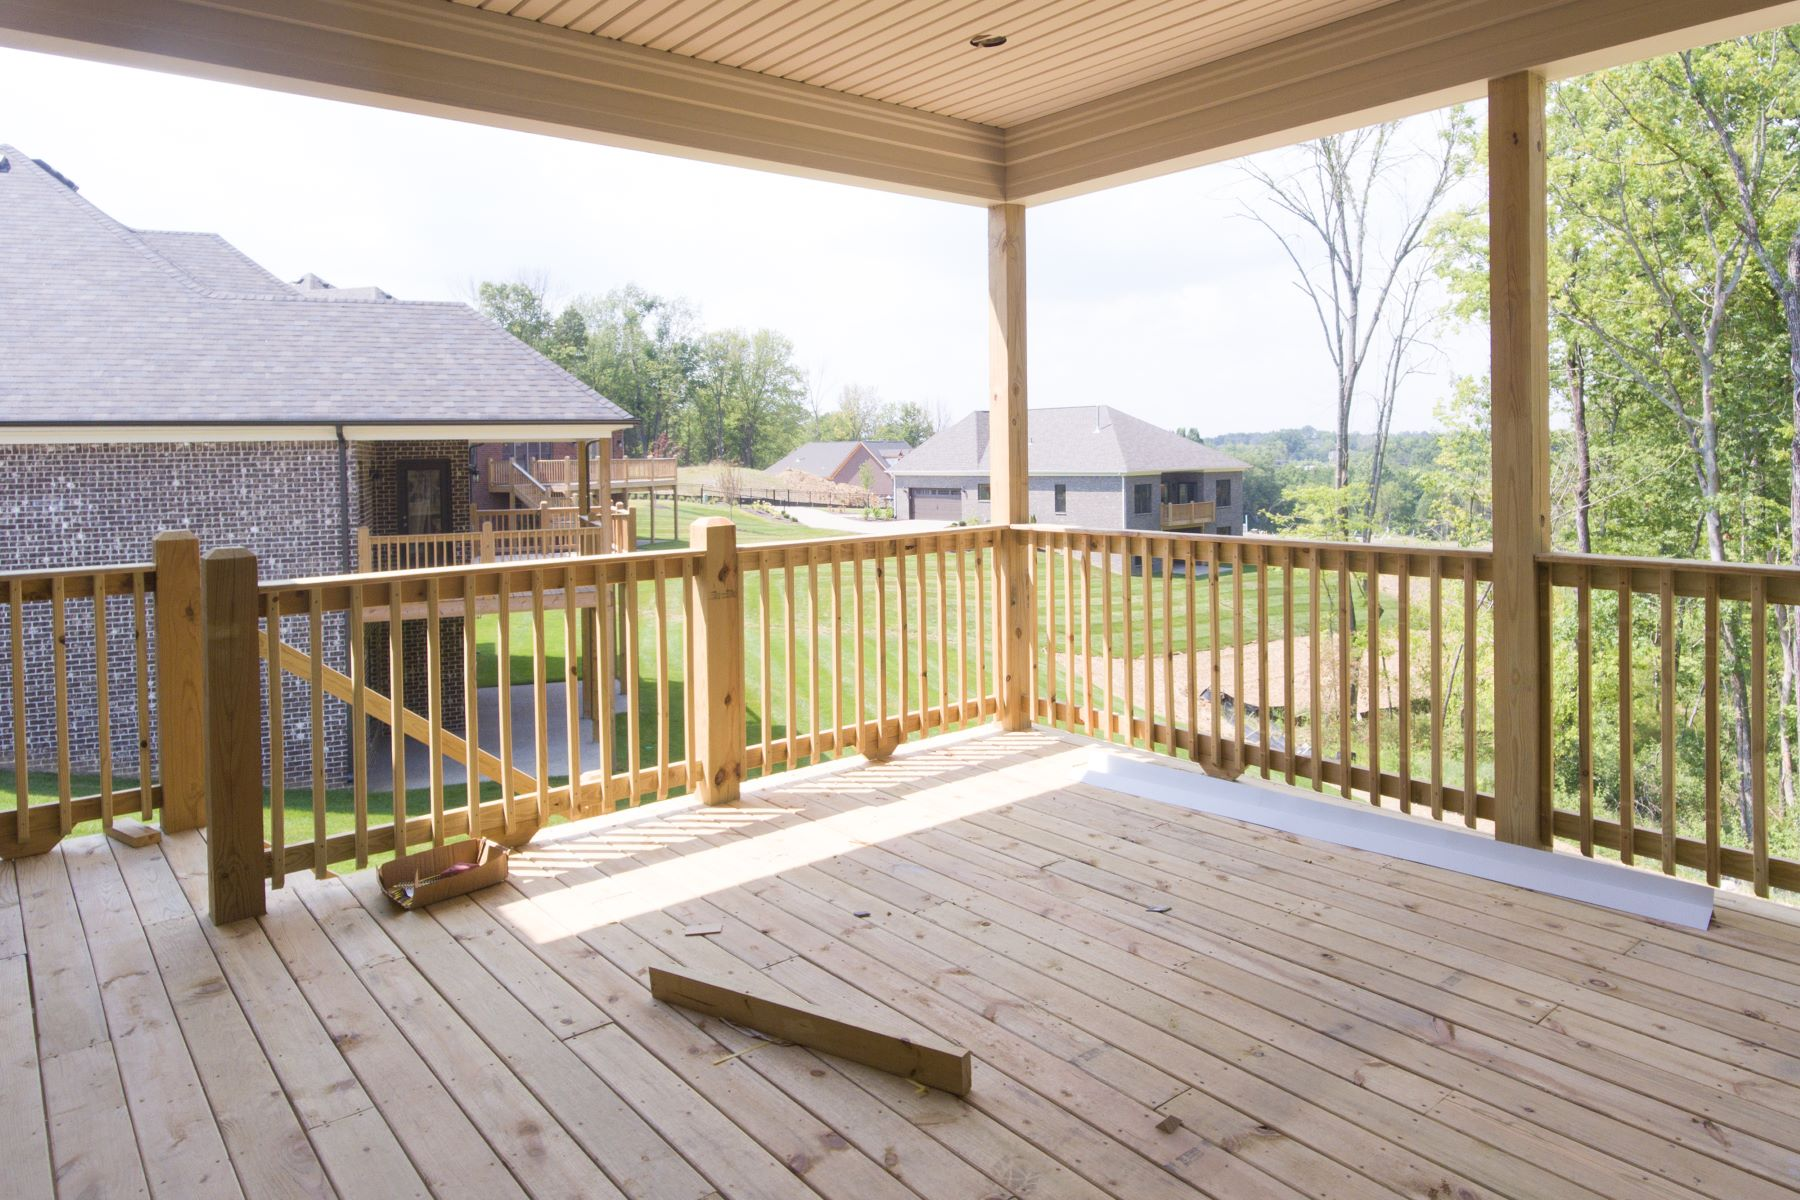 Additional photo for property listing at 17405 Shakes Creek Drive  Fisherville, Kentucky 40023 United States